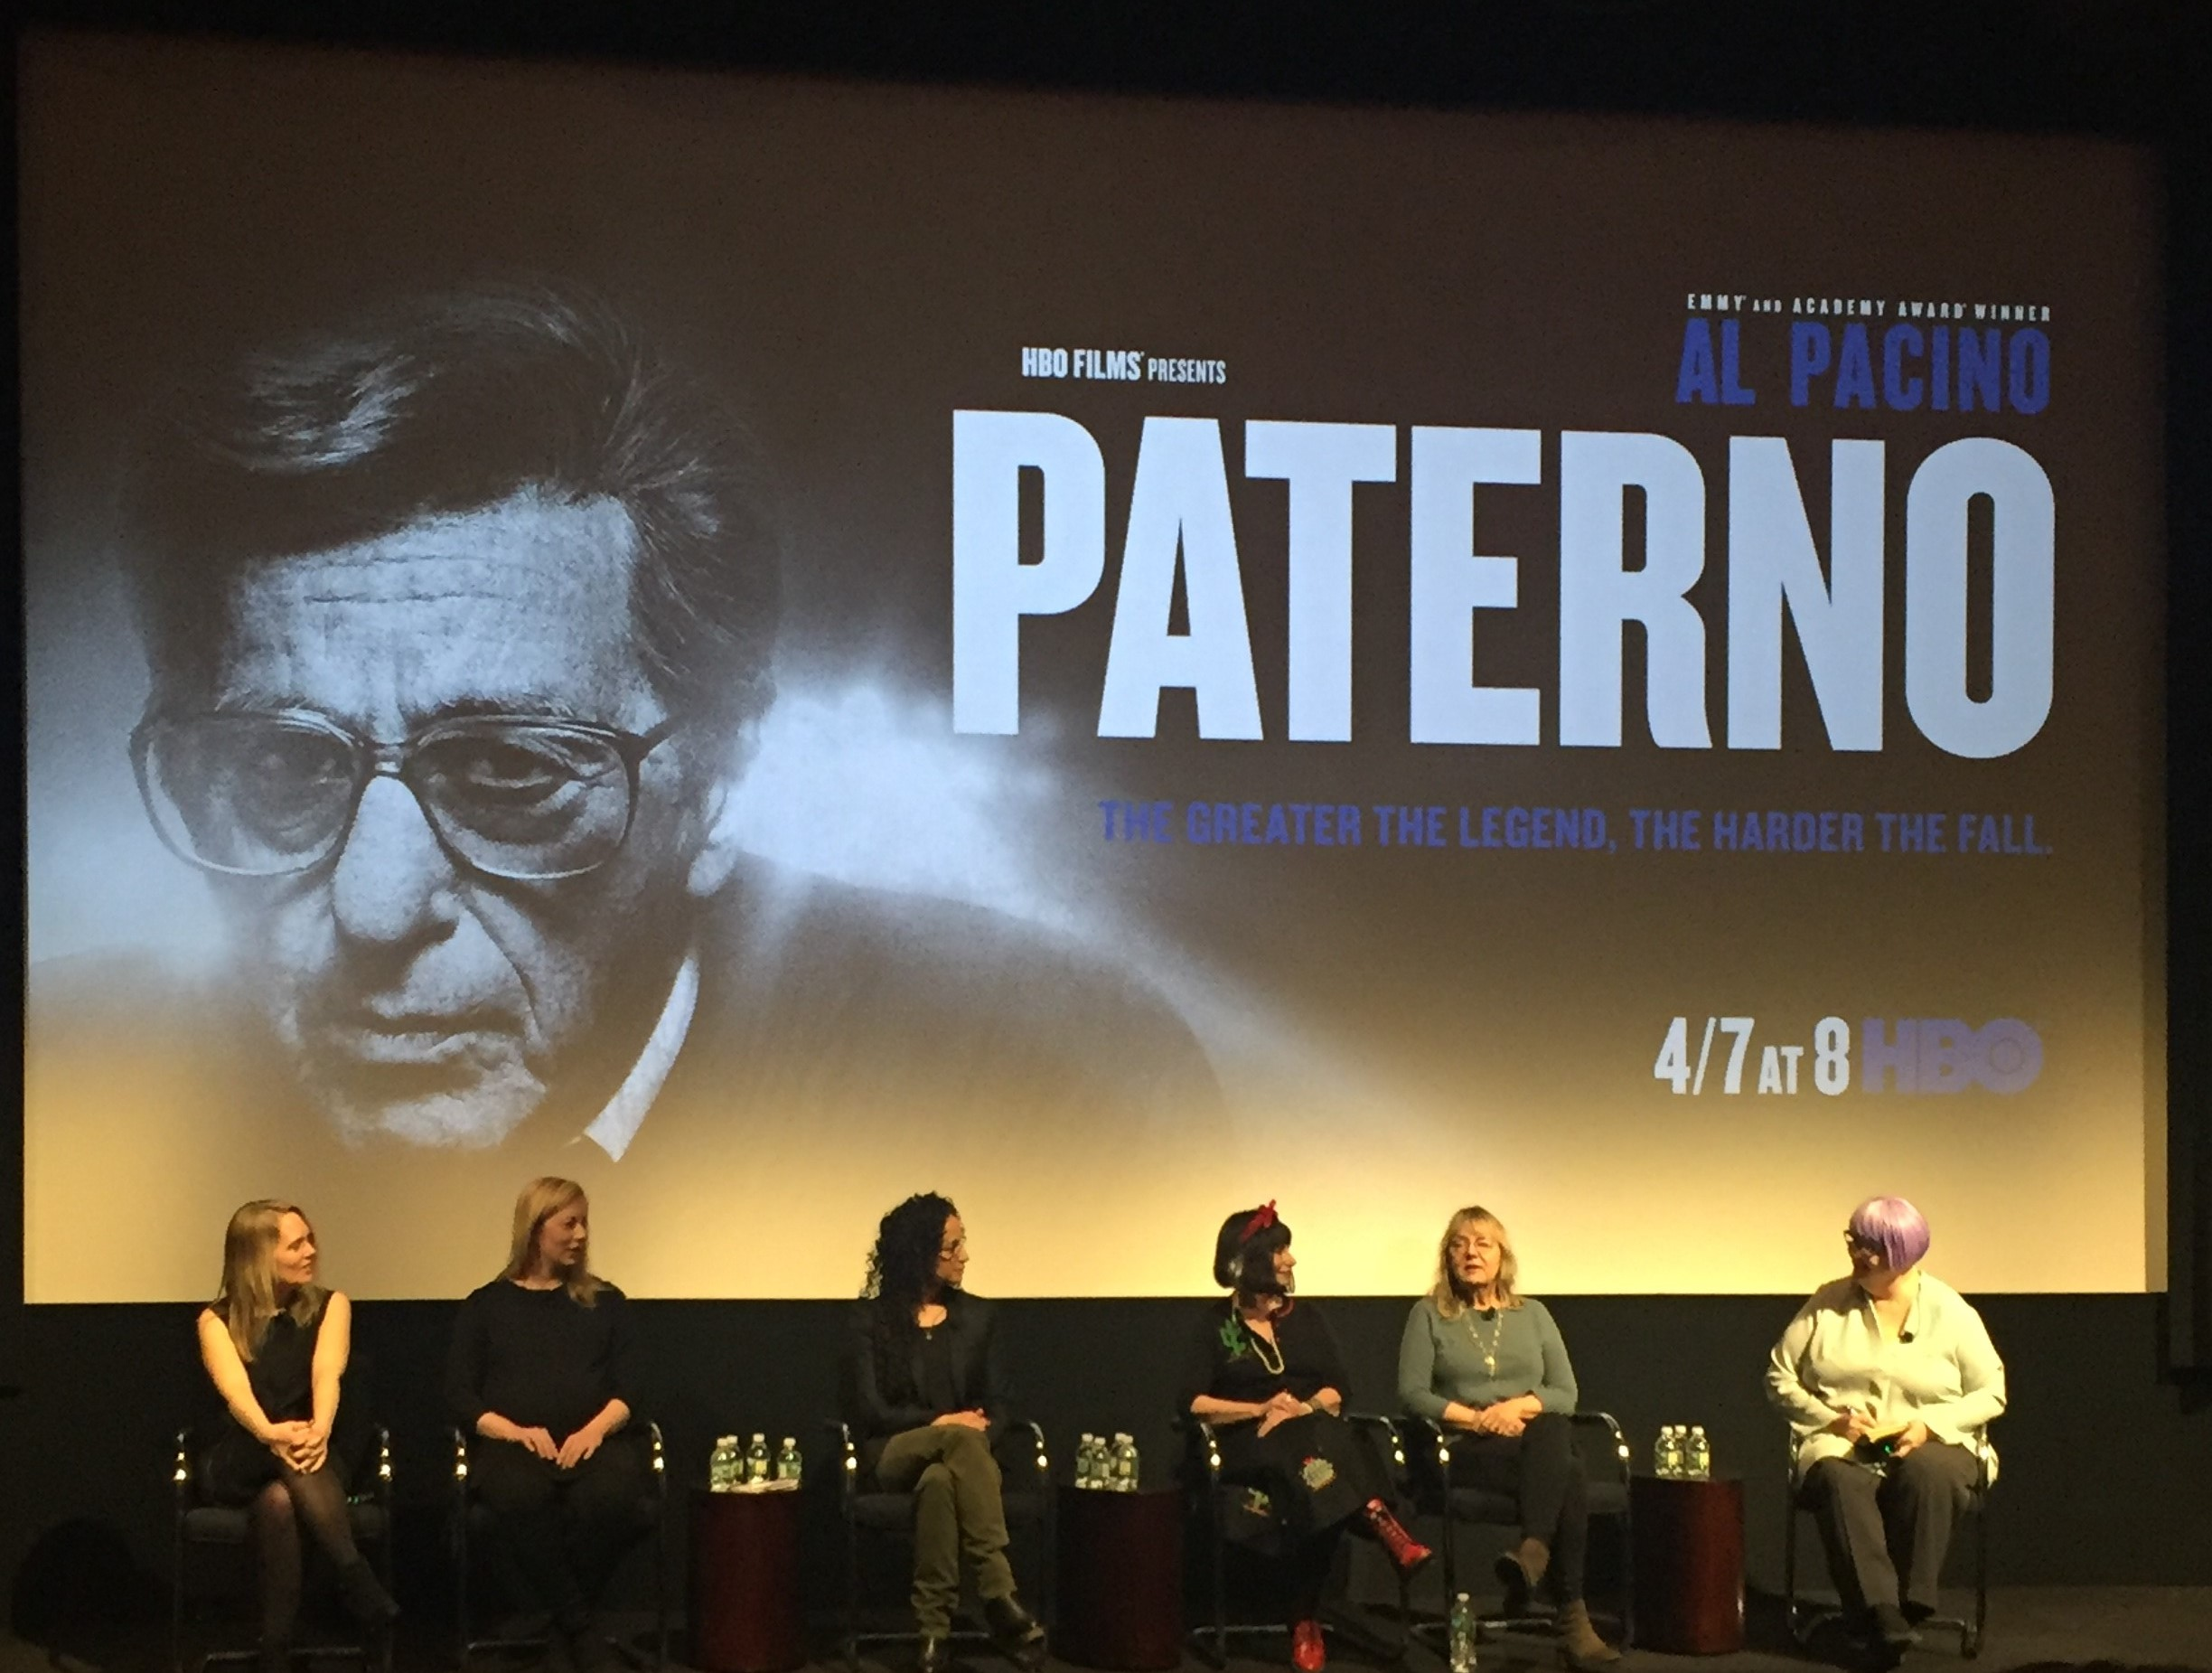 HBO 'Paterno' Movie poster